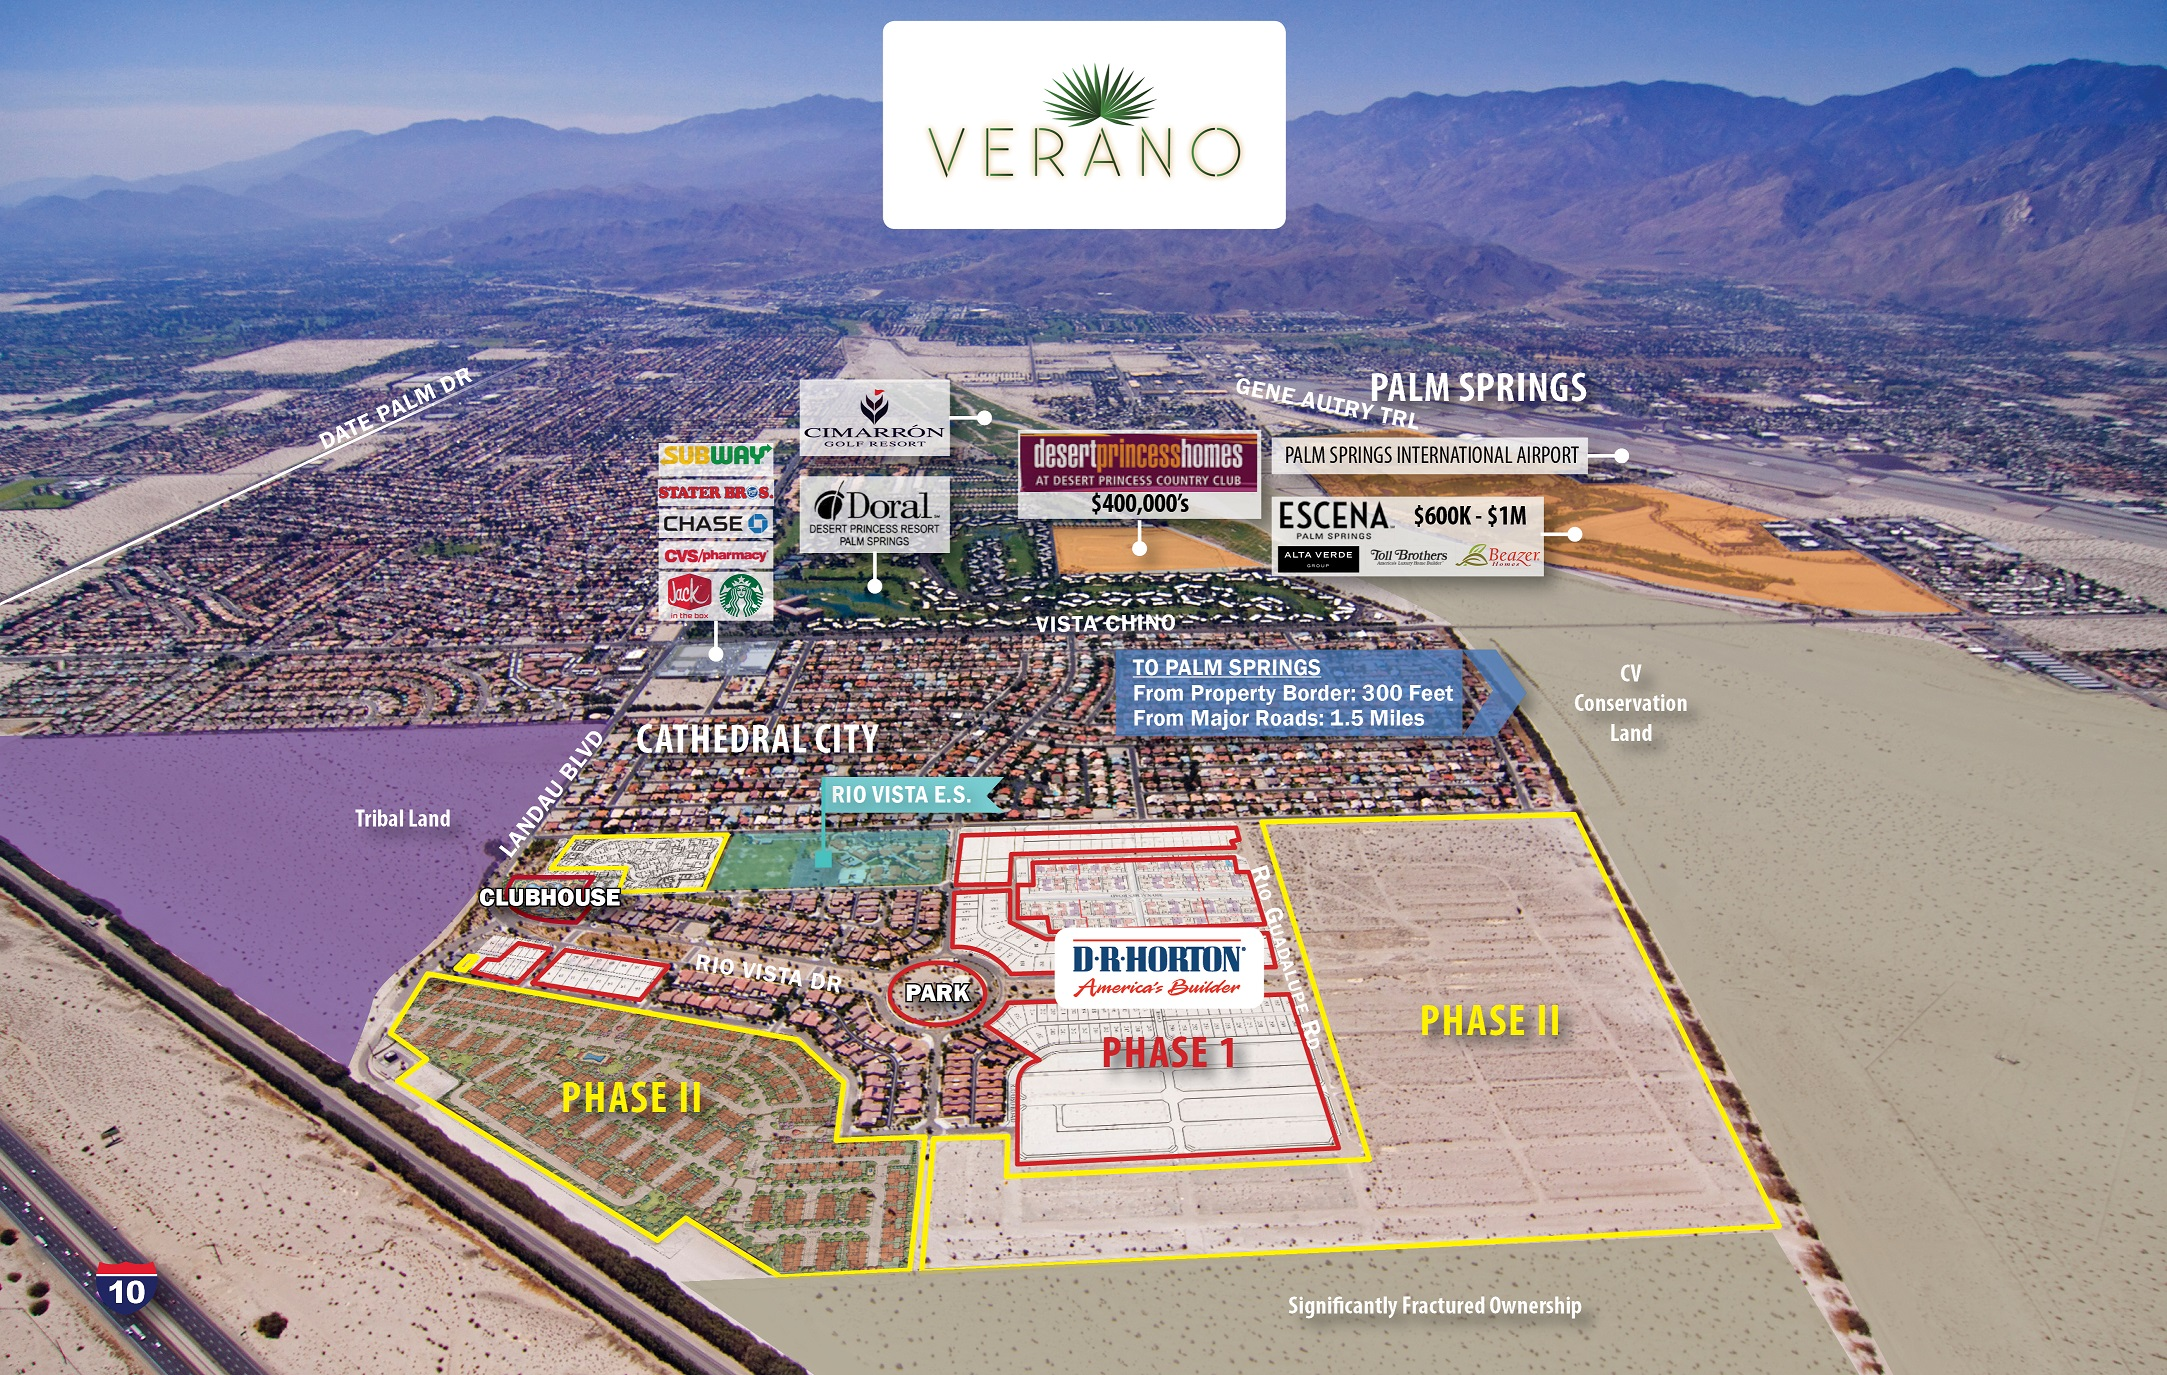 D R Horton Buys 329 Lots At Verano In Cathedral City